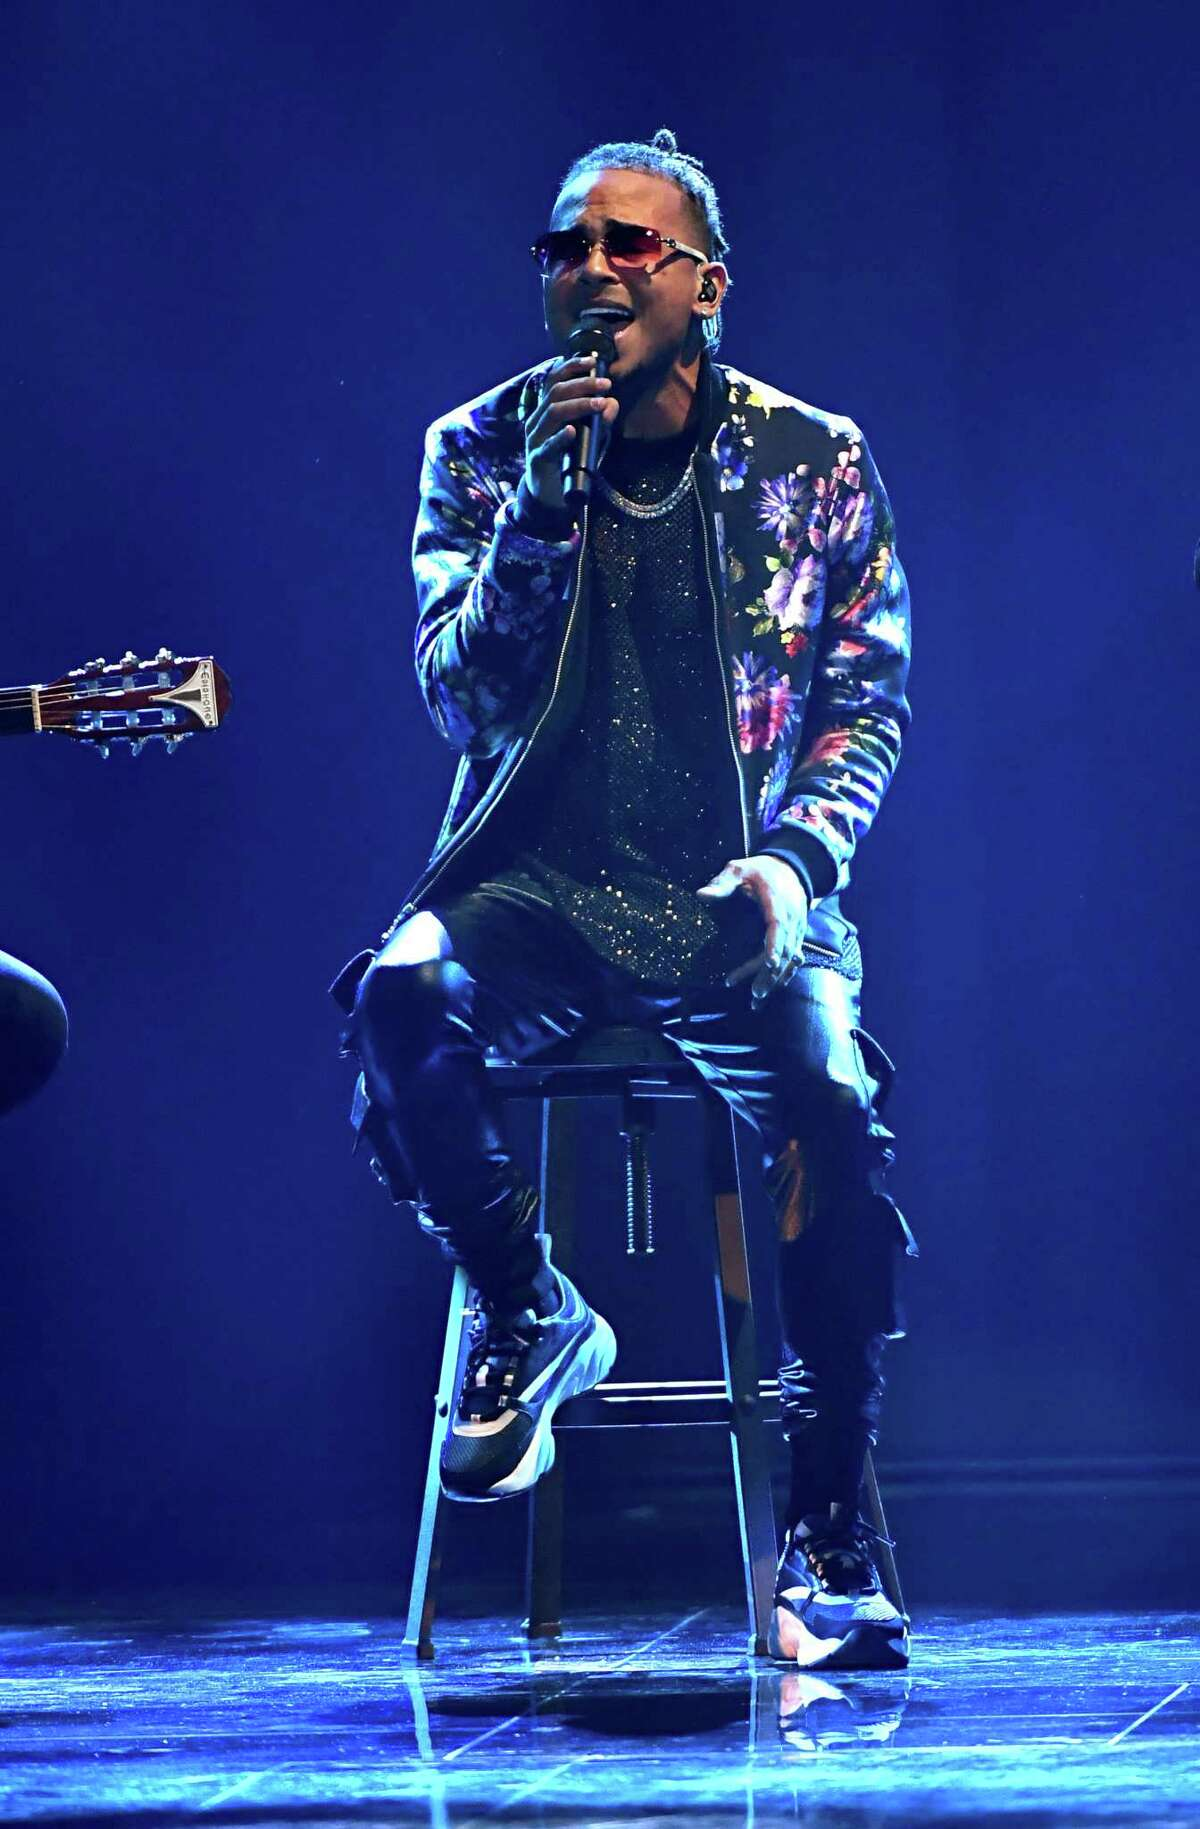 Going viral Ozuna is the most-viewed artist, in any genre or language, of 2018 on YouTube with an astonishing 8.7 billion views.